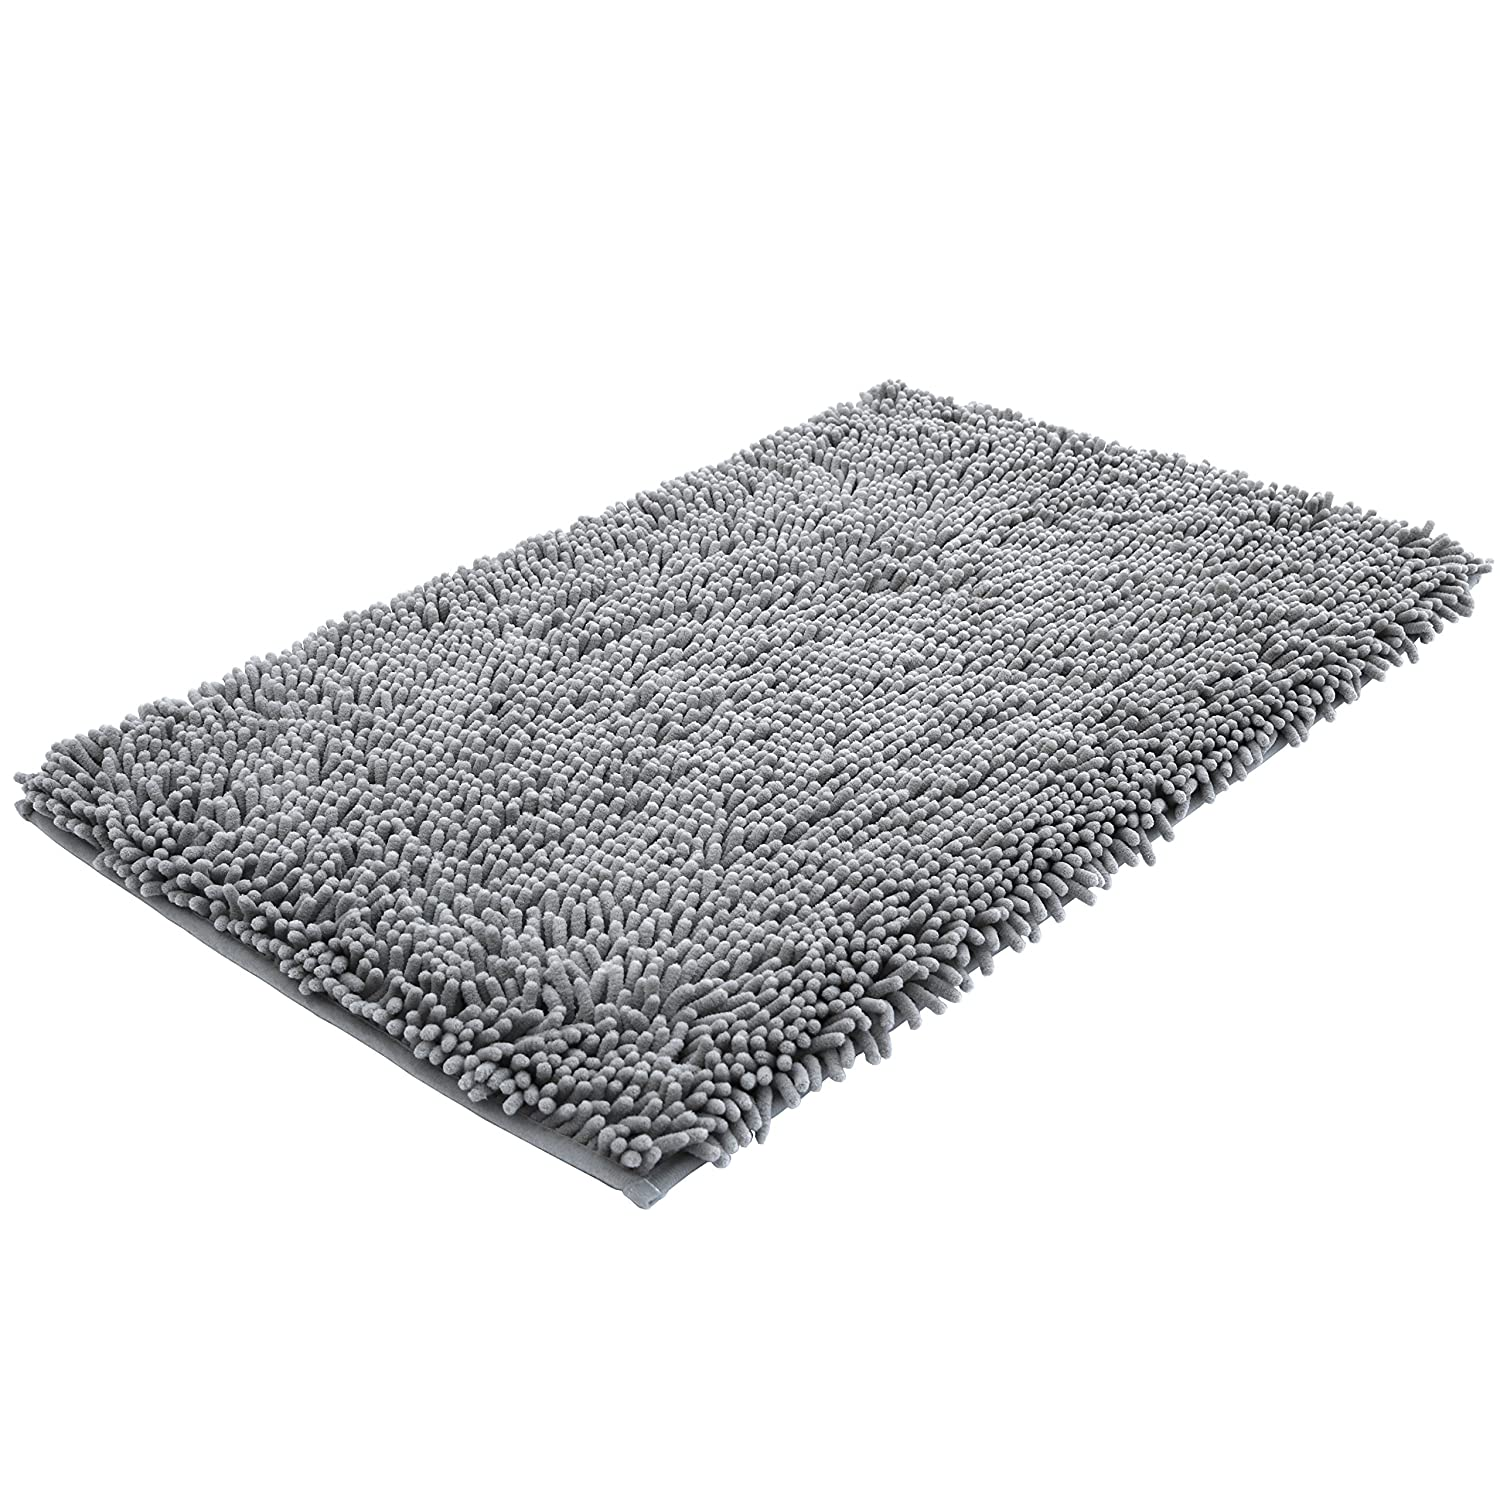 Shop Amazoncom Bath Rugs - Rubber backed bath mats for bathroom decorating ideas